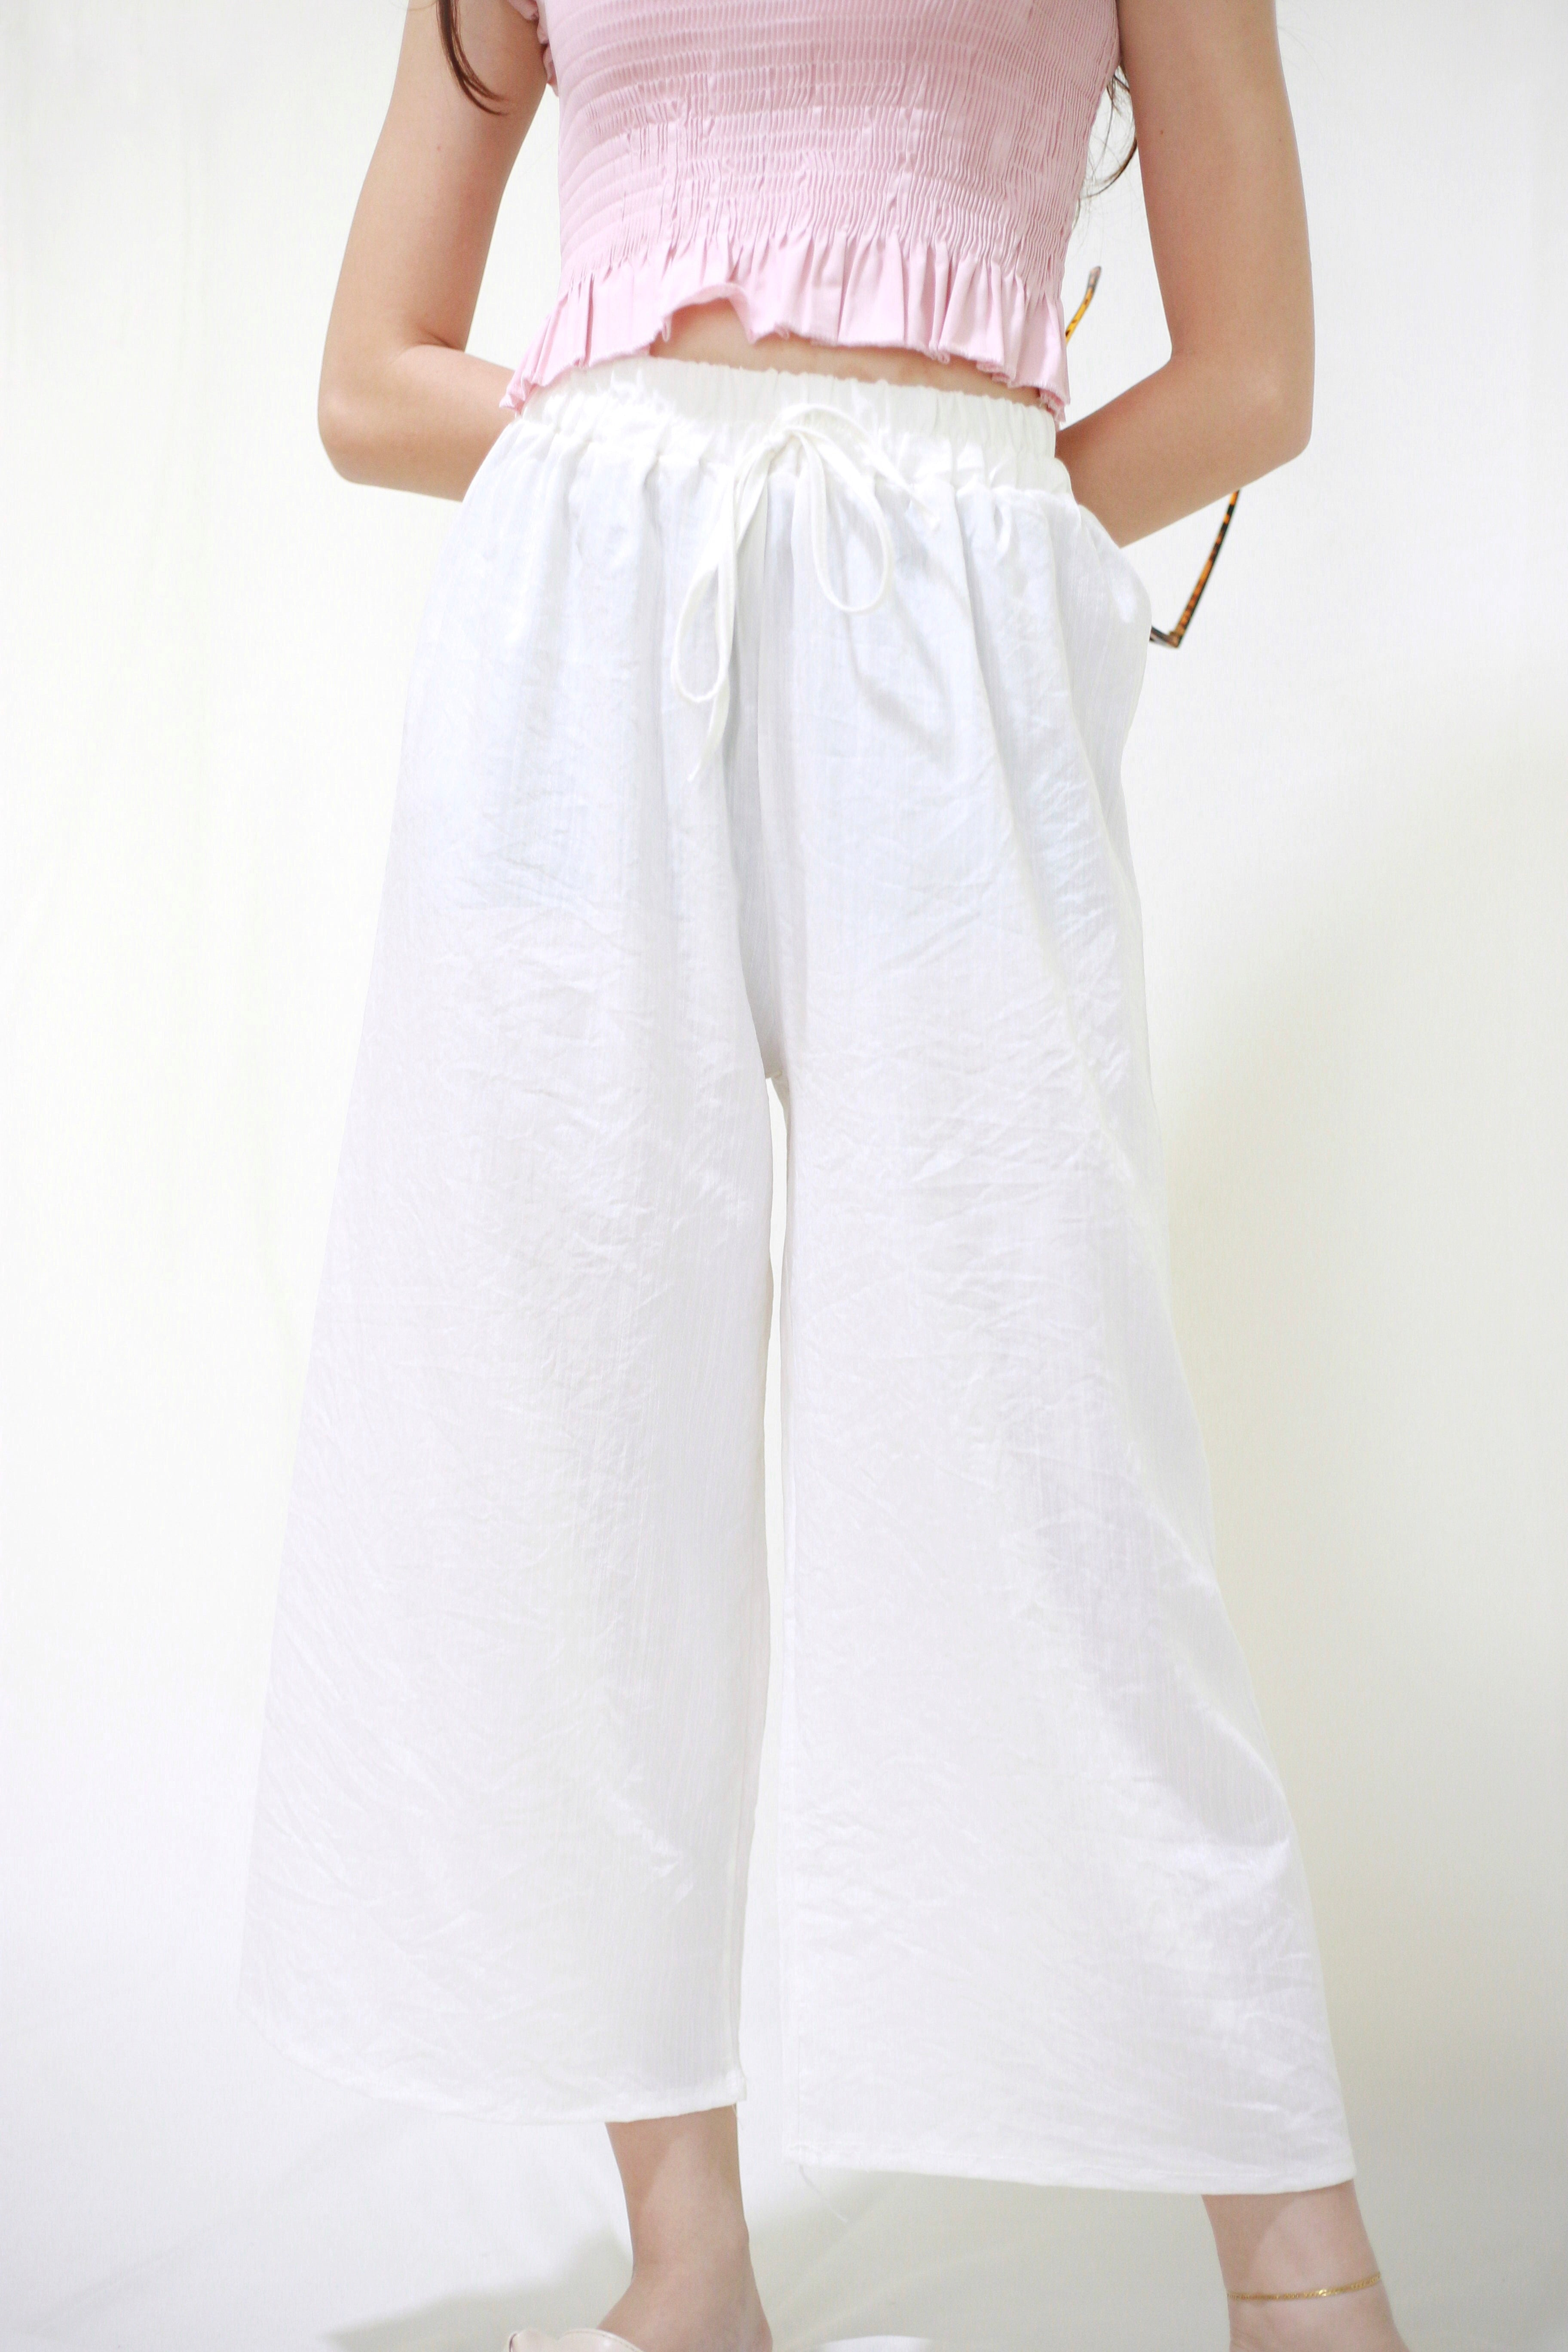 LILY Soft Culottes (Garterized)